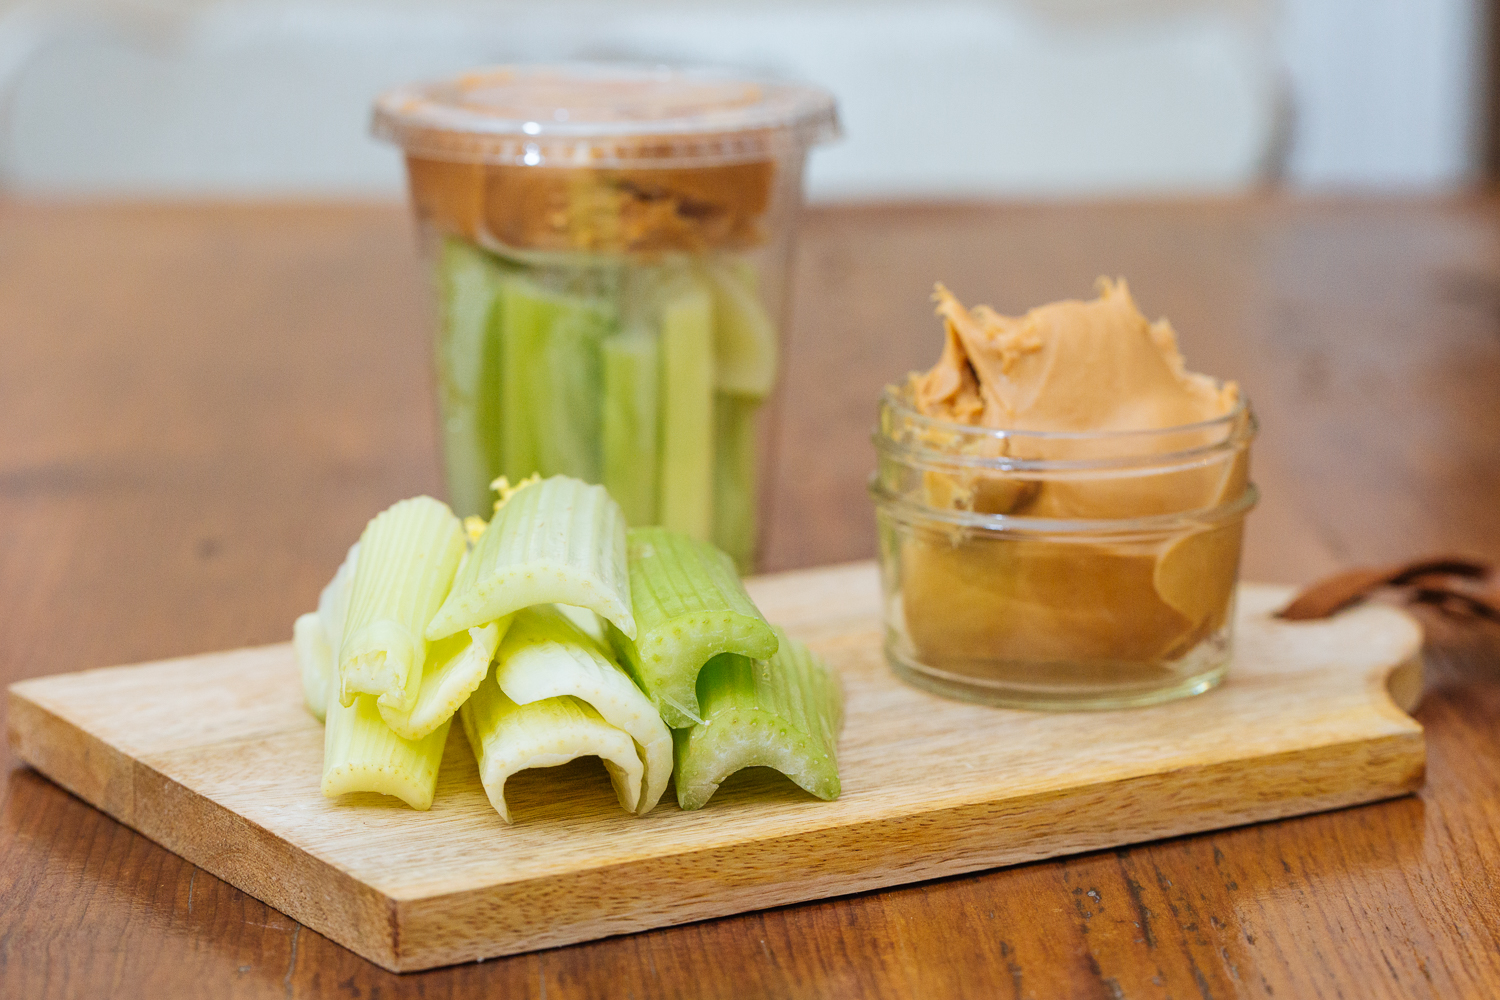 Celery and Peanut Butter Snack Cup